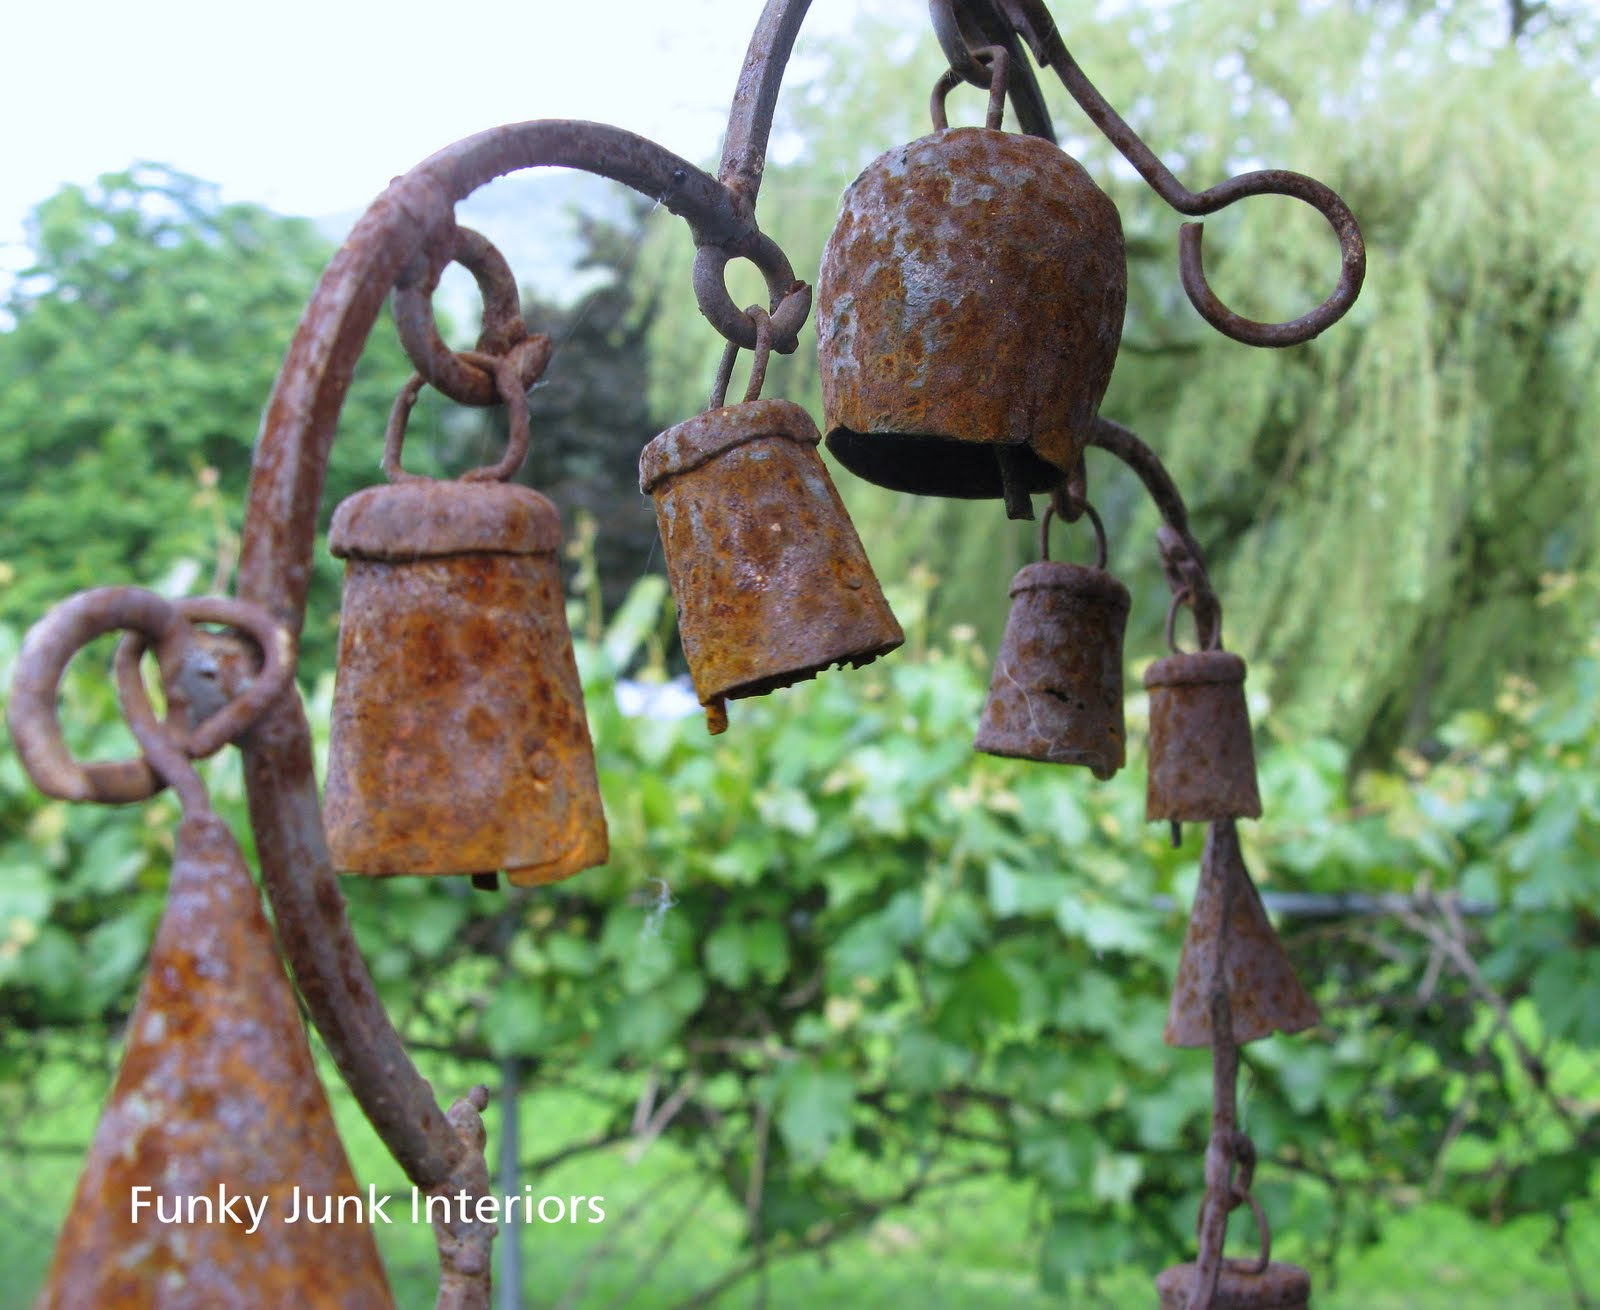 Decorating the great outdoors with junk for \'Gitter Done!\' - Funky ...